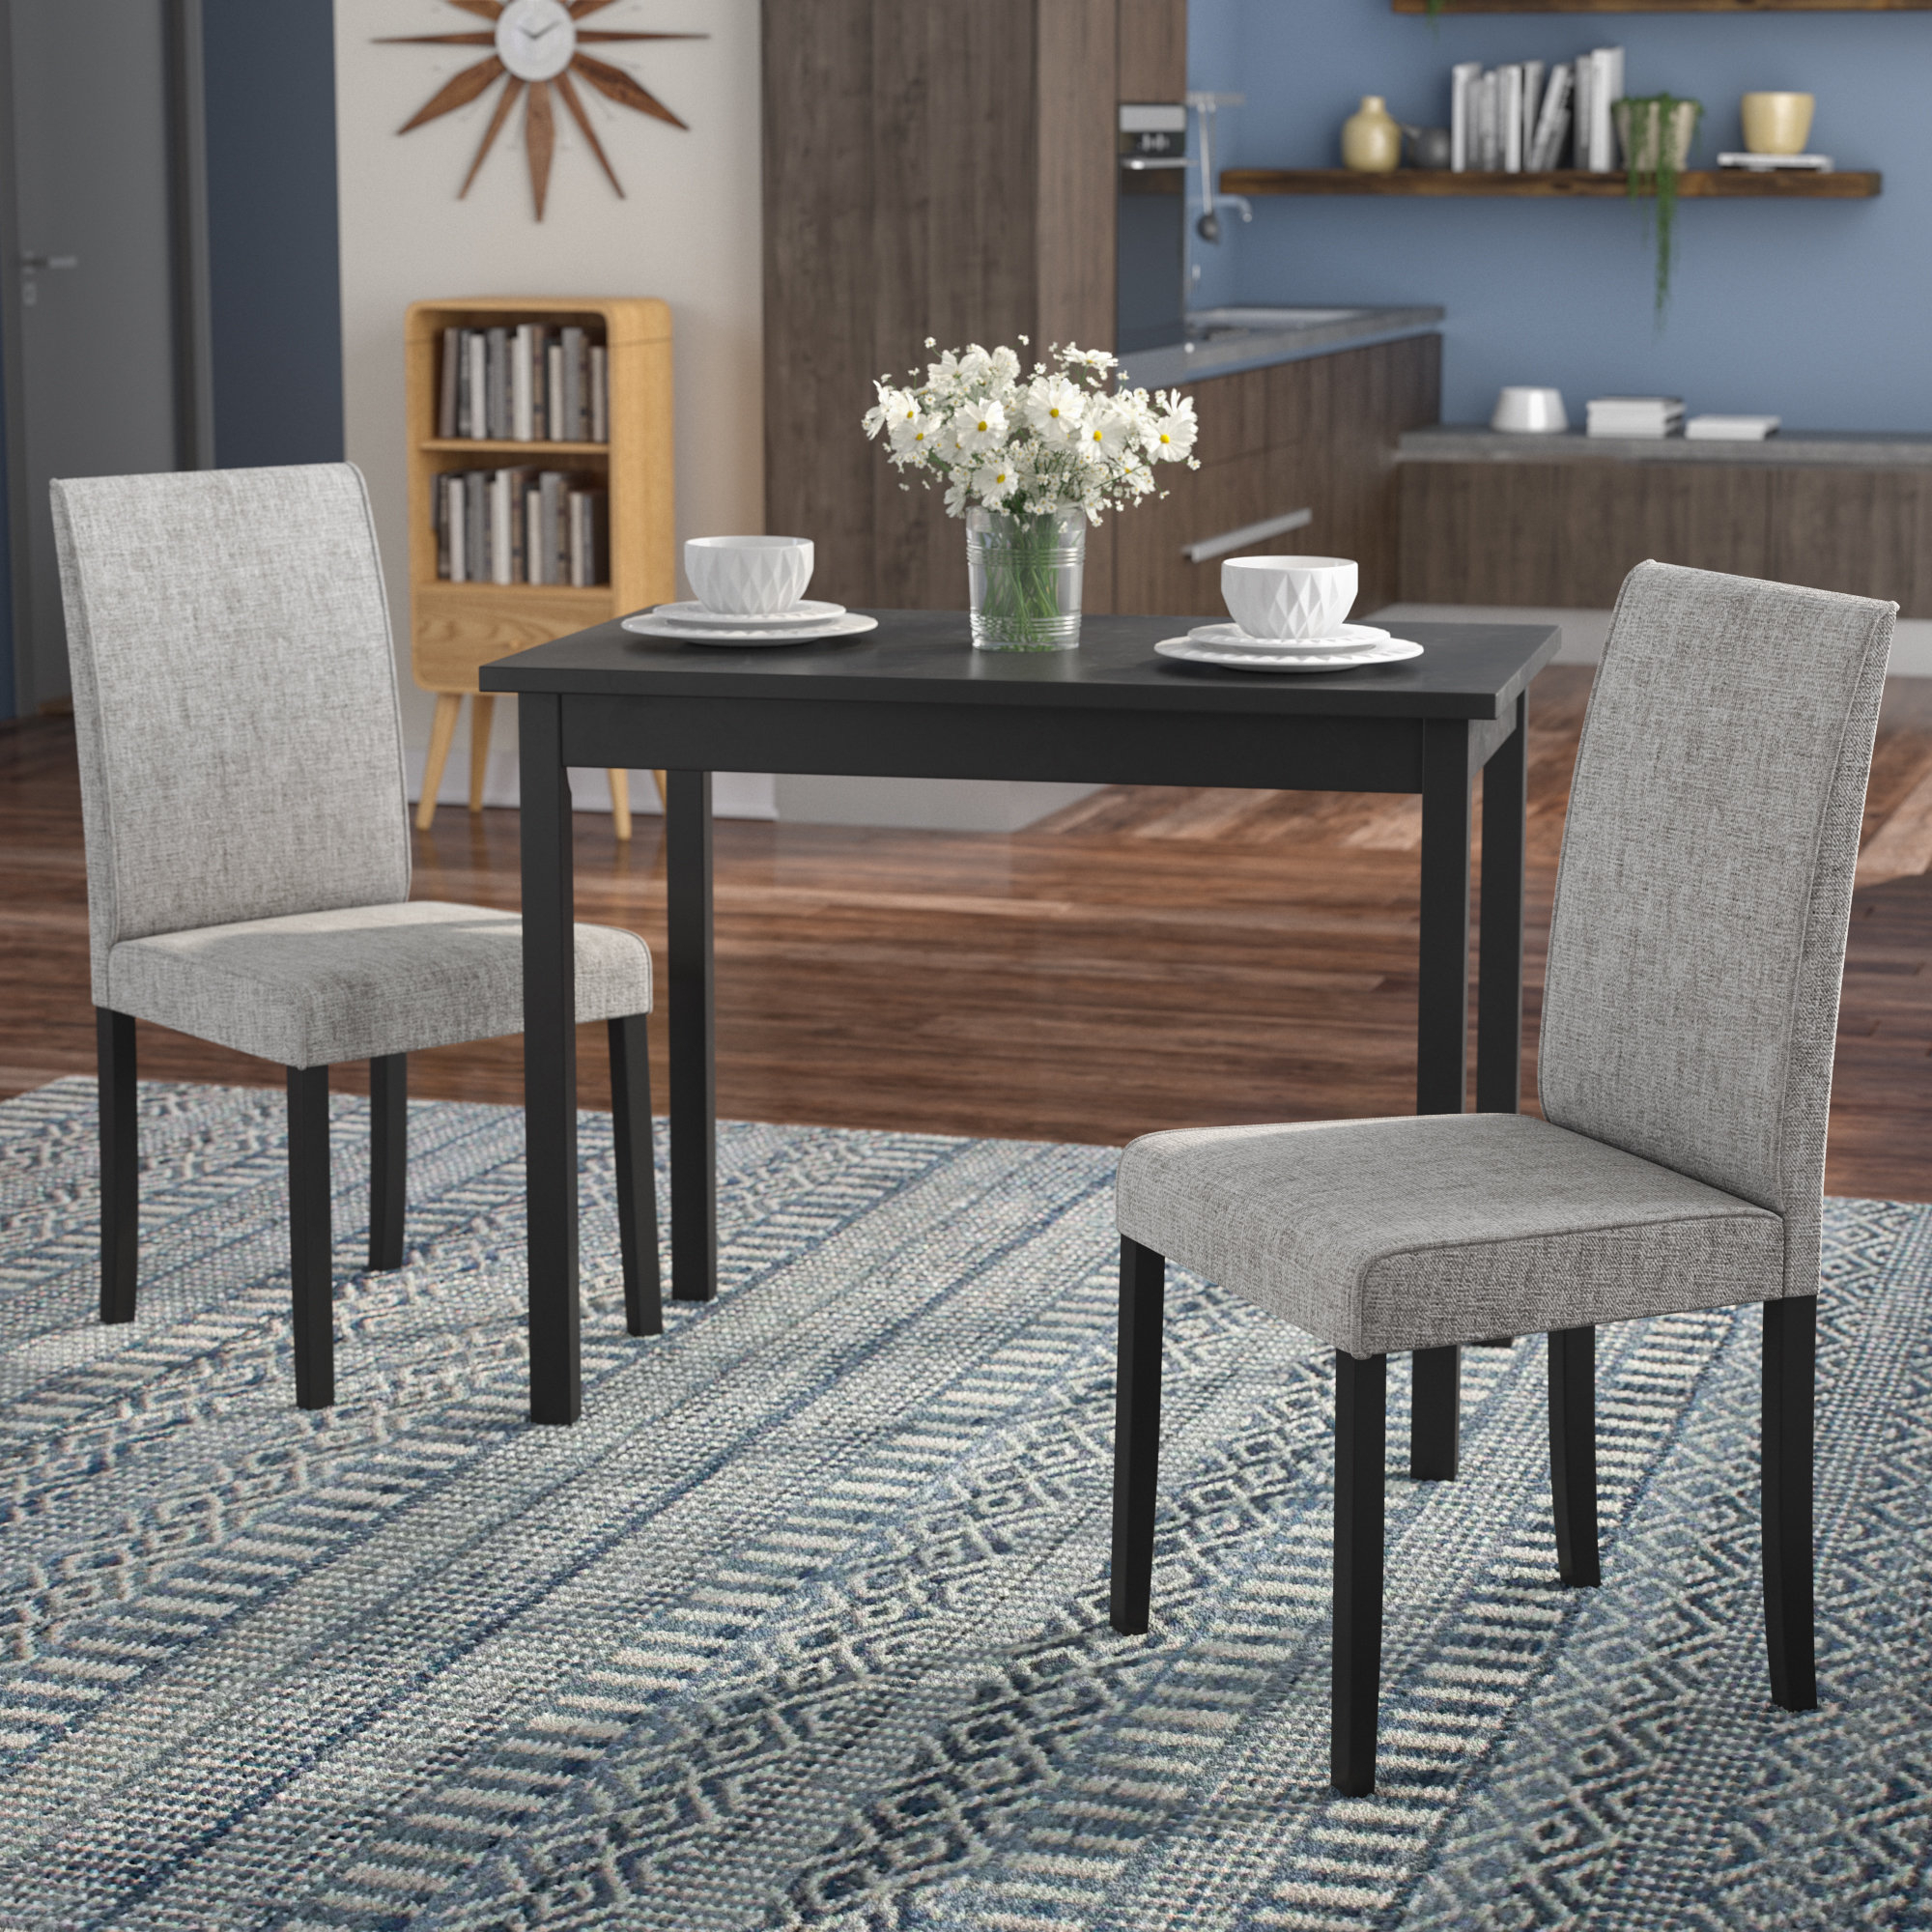 Latitude Run Darvell 3 Piece Dining Set & Reviews | Wayfair.ca With Regard To Most Current Isolde 3 Piece Dining Sets (Photo 3 of 20)